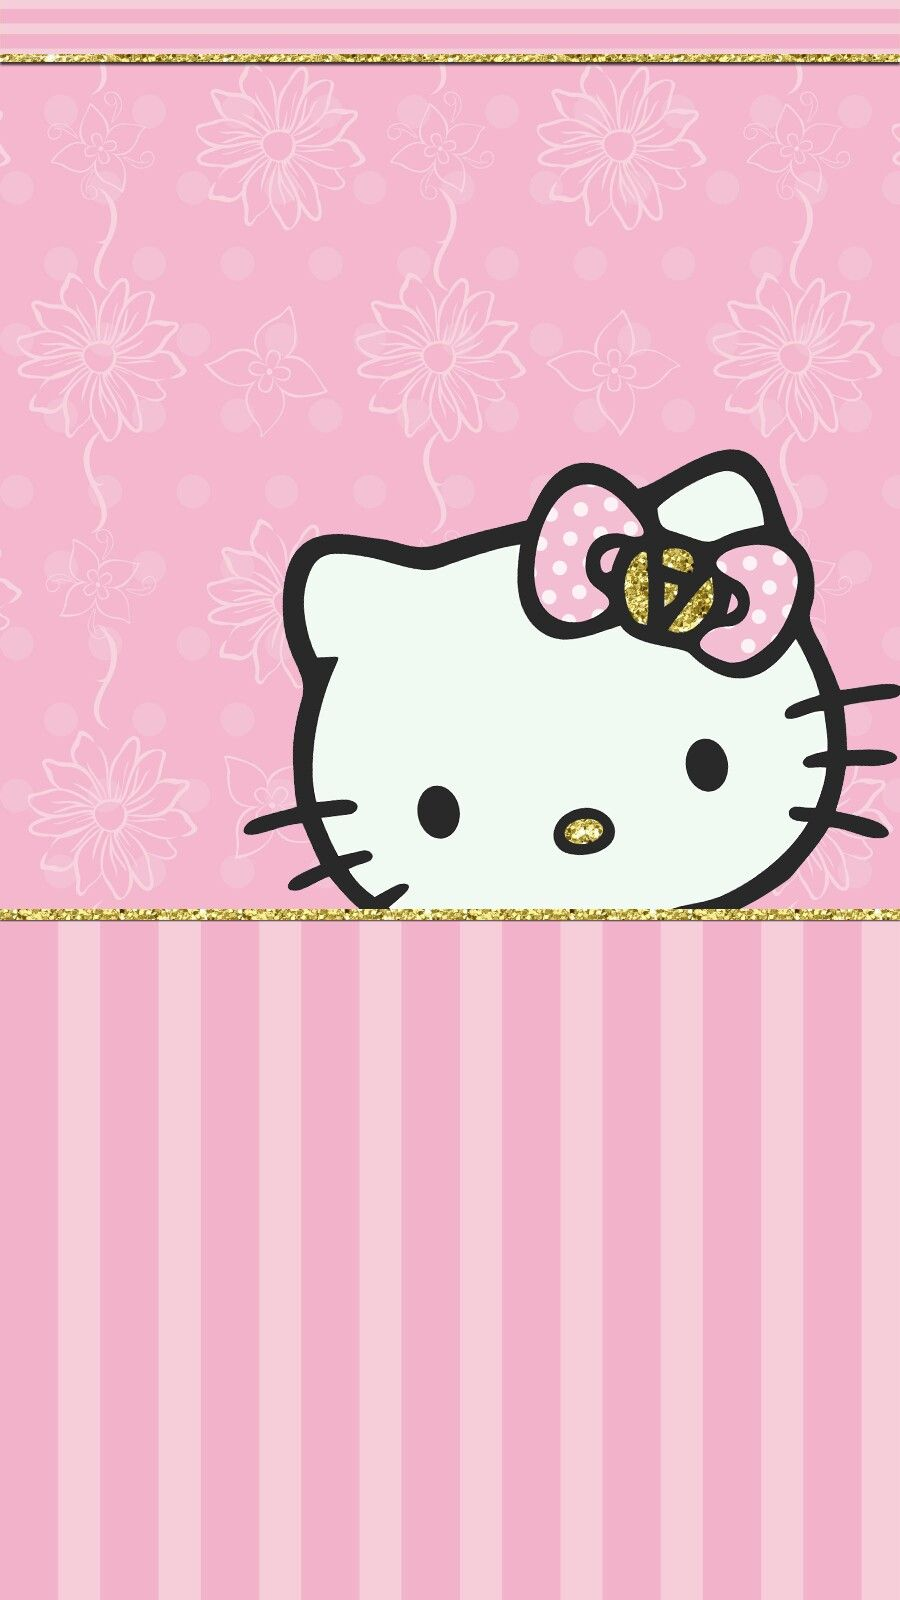 Amazing Wallpaper Hello Kitty Note 2 - ce71b5e24c19570db5f26c91a22dd735  Collection_469891.jpg